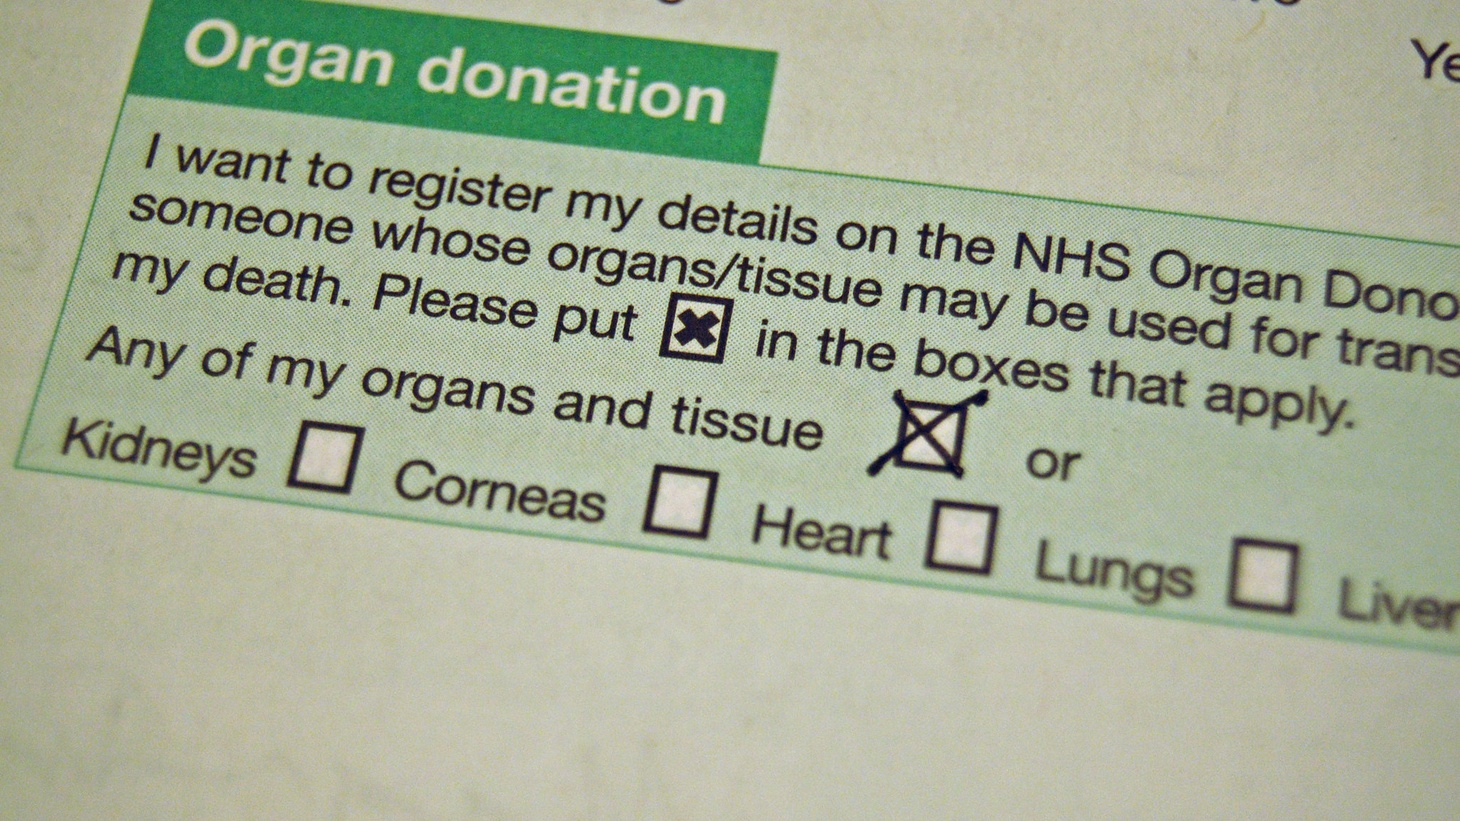 Organ donation form.